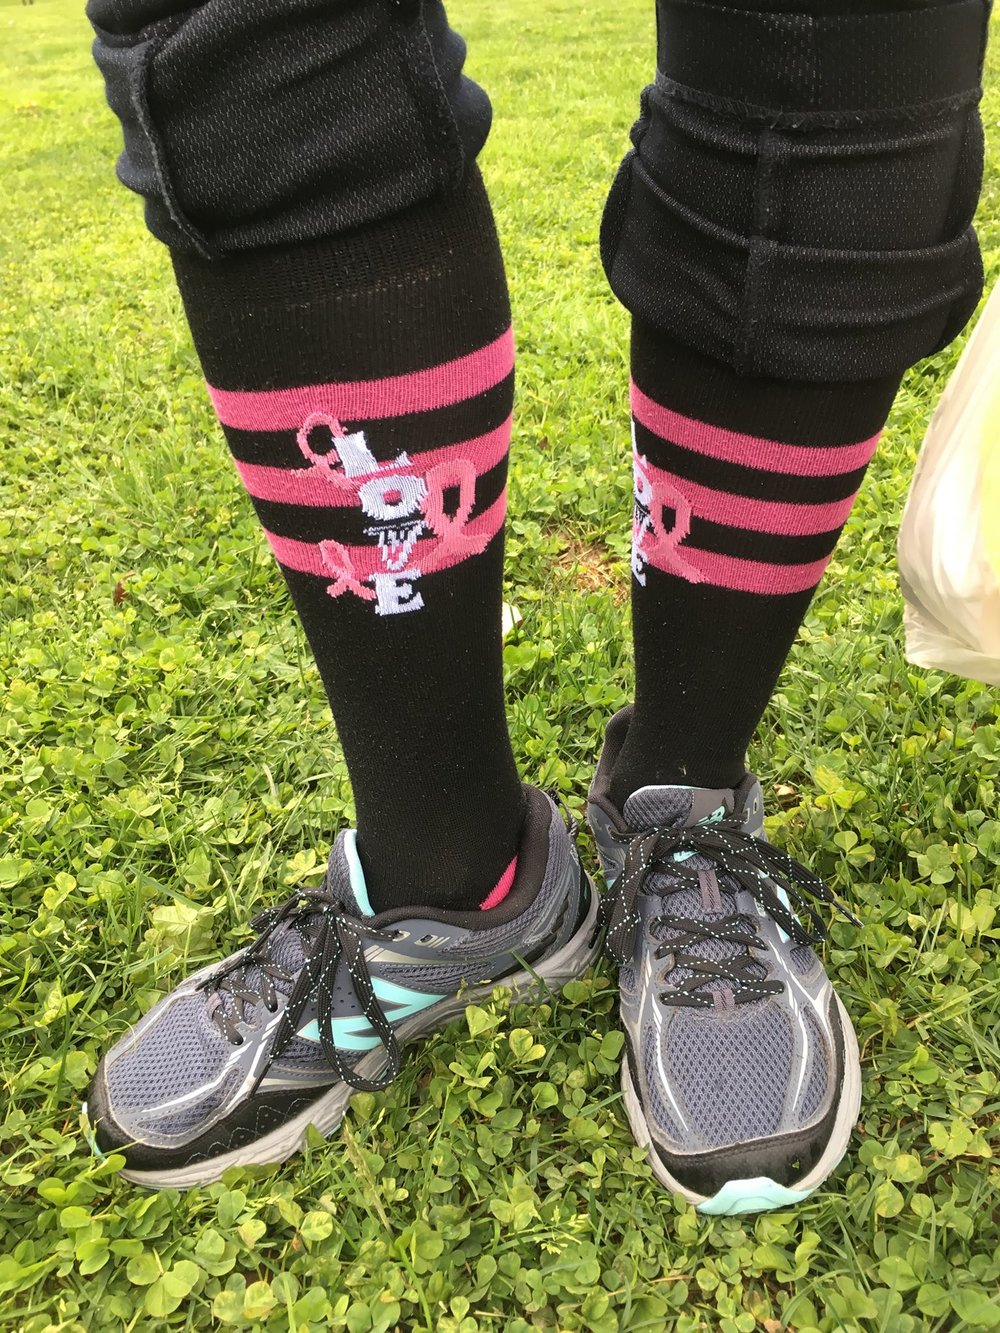 Mom Breast cancer socks.jpg